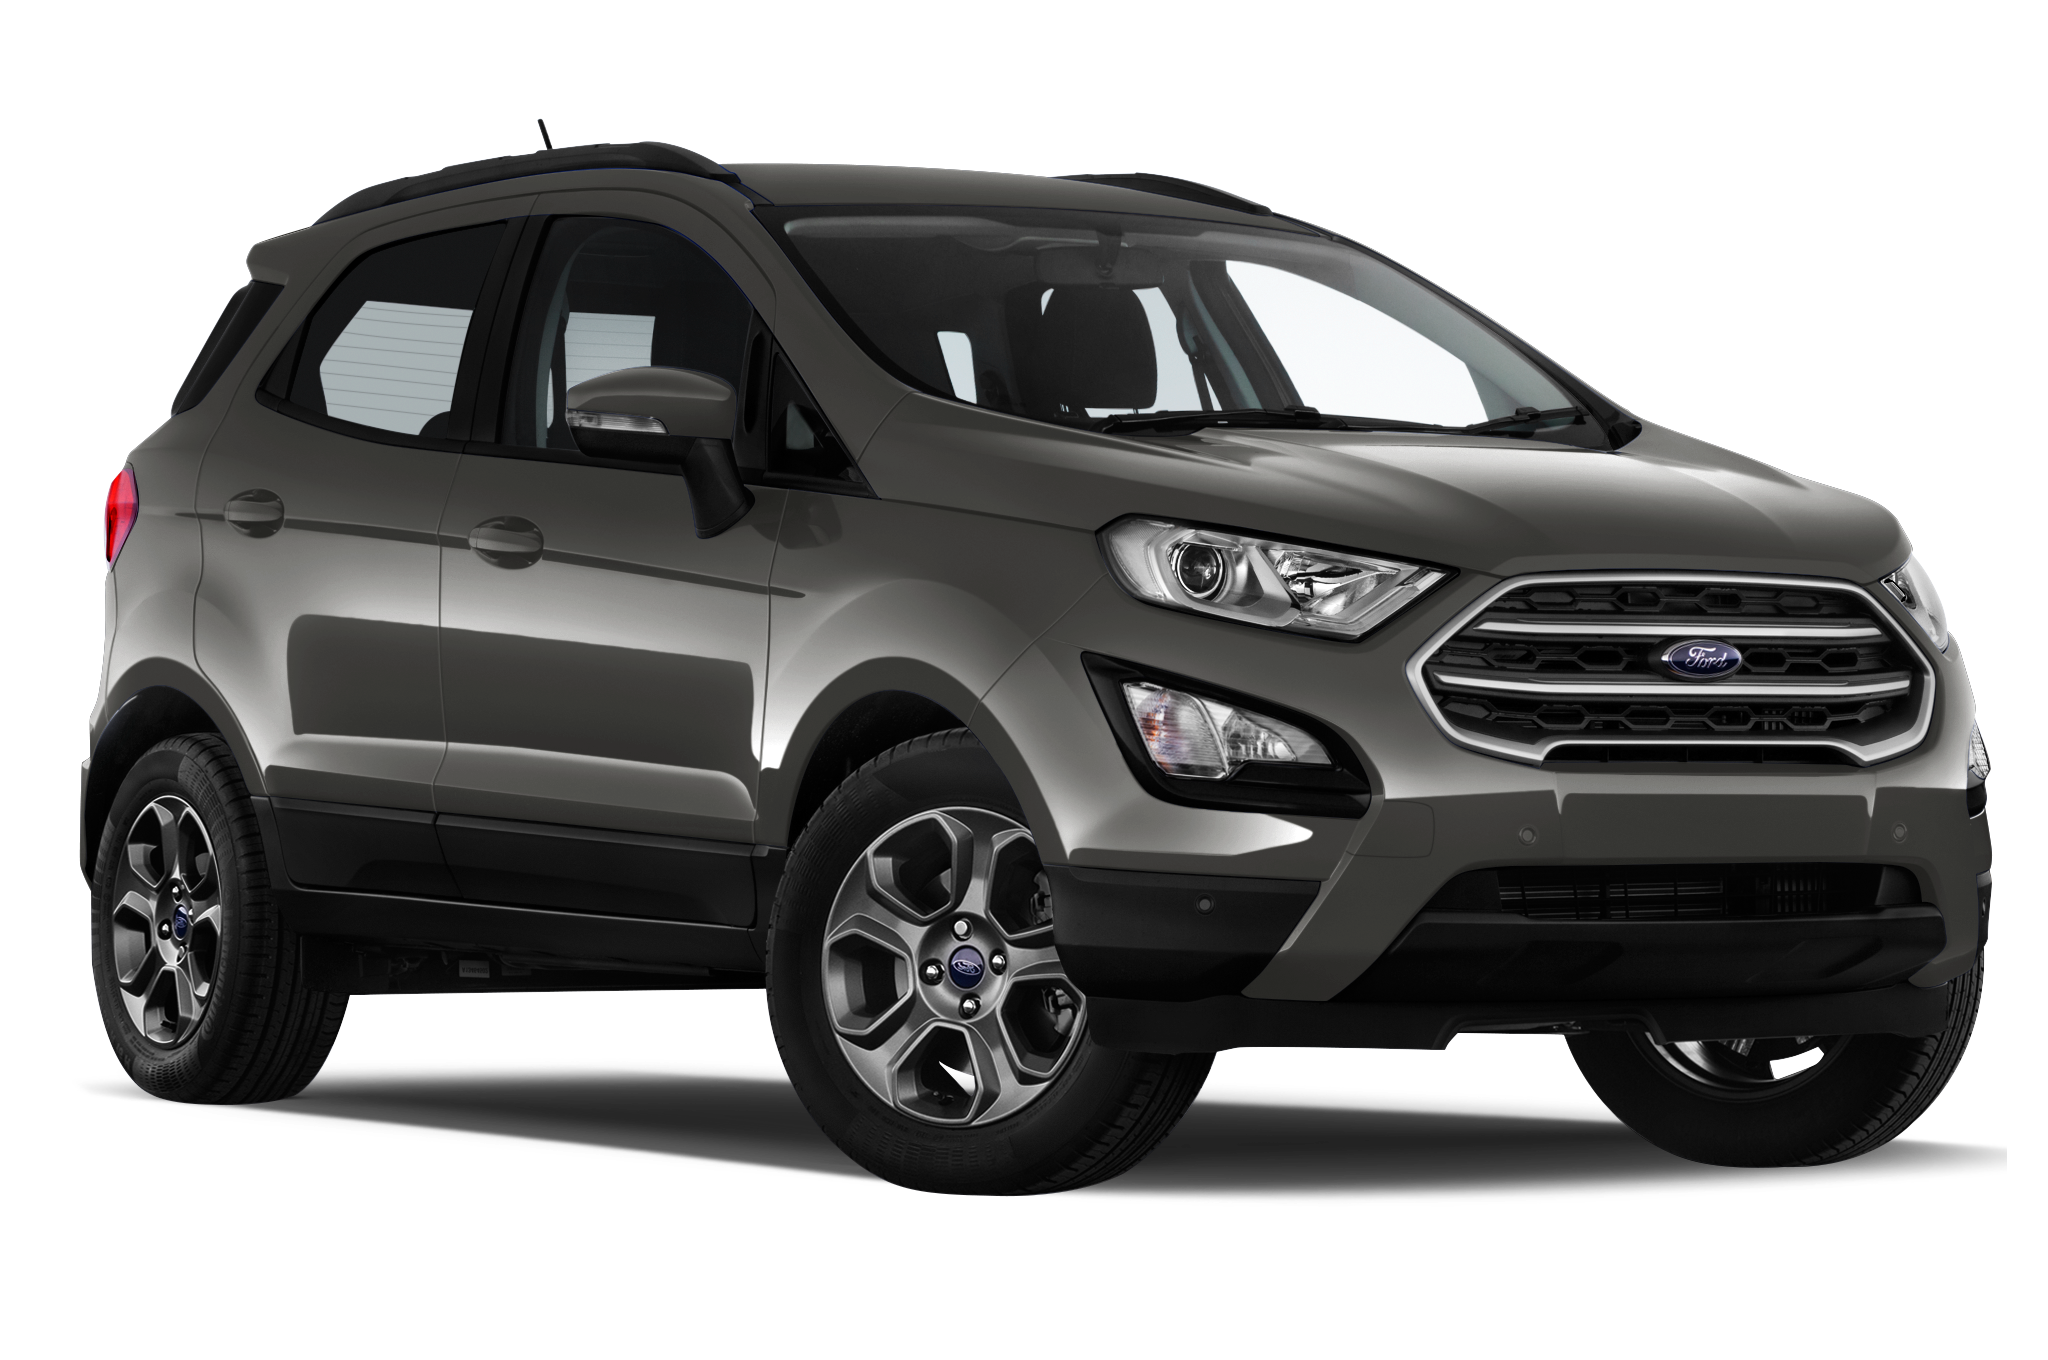 Ford Ecosport Specifications Prices Carwow